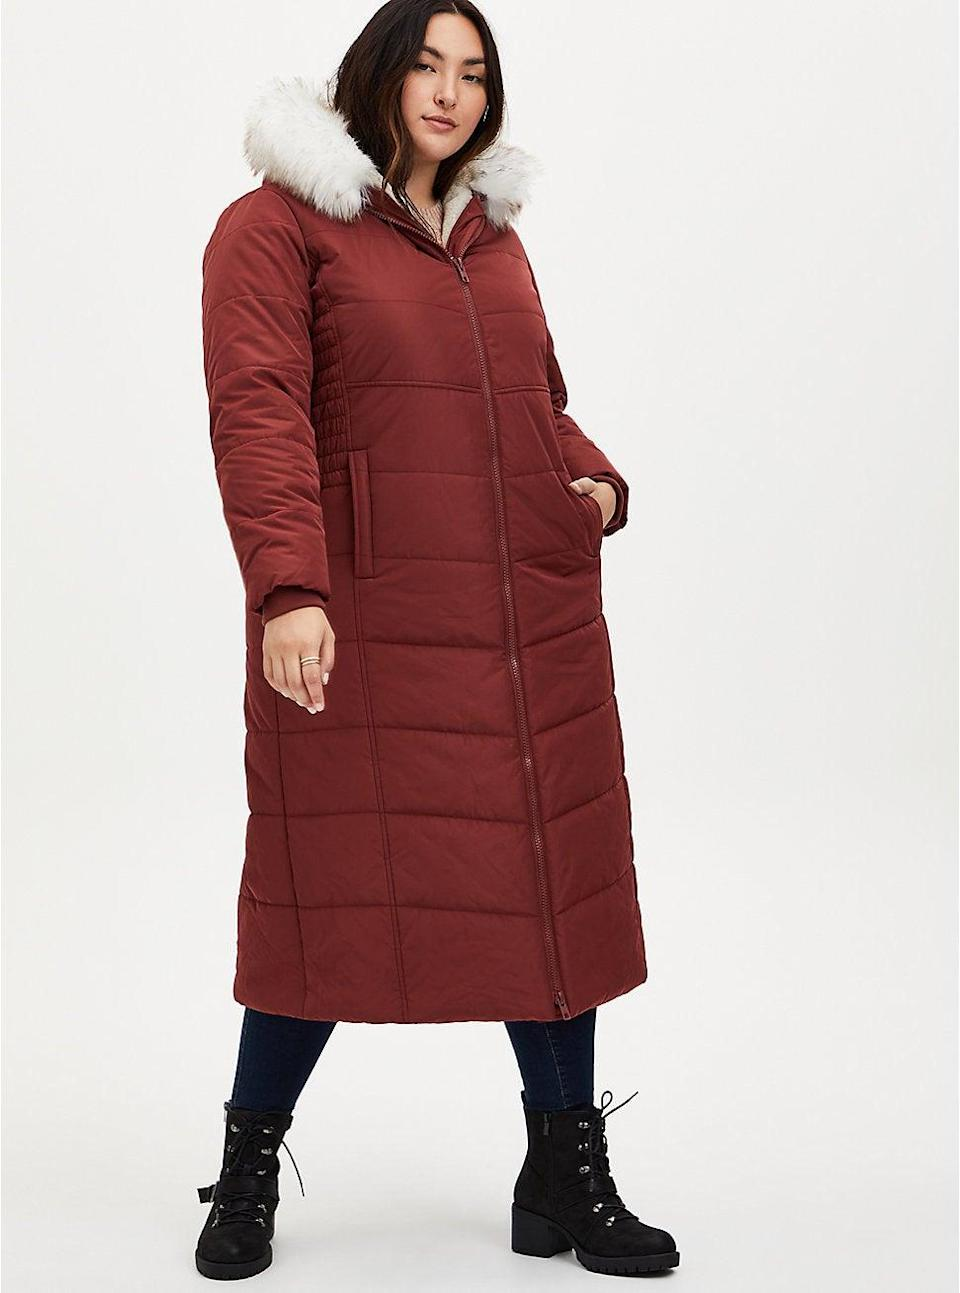 "<br><br><strong>Torrid</strong> Brick Red Fit & Flare Maxi Puffer Coat, $, available at <a href=""https://go.skimresources.com/?id=30283X879131&url=https%3A%2F%2Fwww.torrid.com%2Fproduct%2Fbrick-red-fit-flare-maxi-puffer-coat-%2F13789817.html"" rel=""nofollow noopener"" target=""_blank"" data-ylk=""slk:Torrid"" class=""link rapid-noclick-resp"">Torrid</a>"